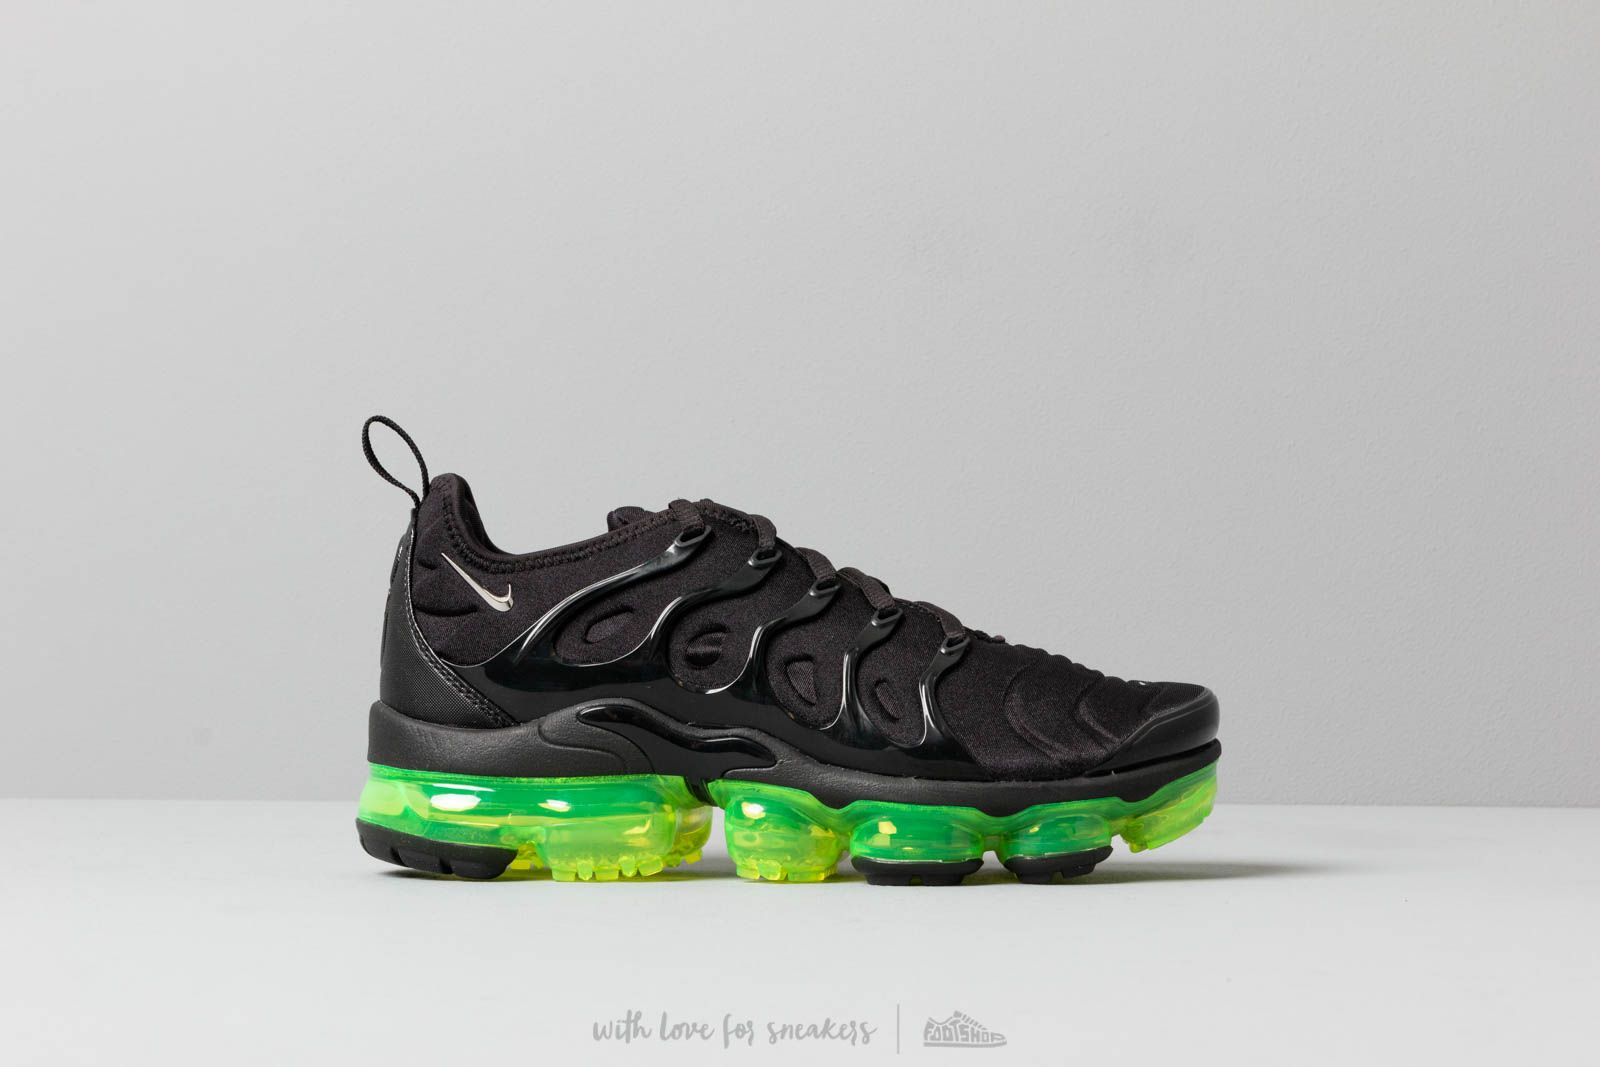 7f31682828507 Nike Air Vapormax Plus Black  Reflect Silver-Volt W super cenie 930 zł kupuj